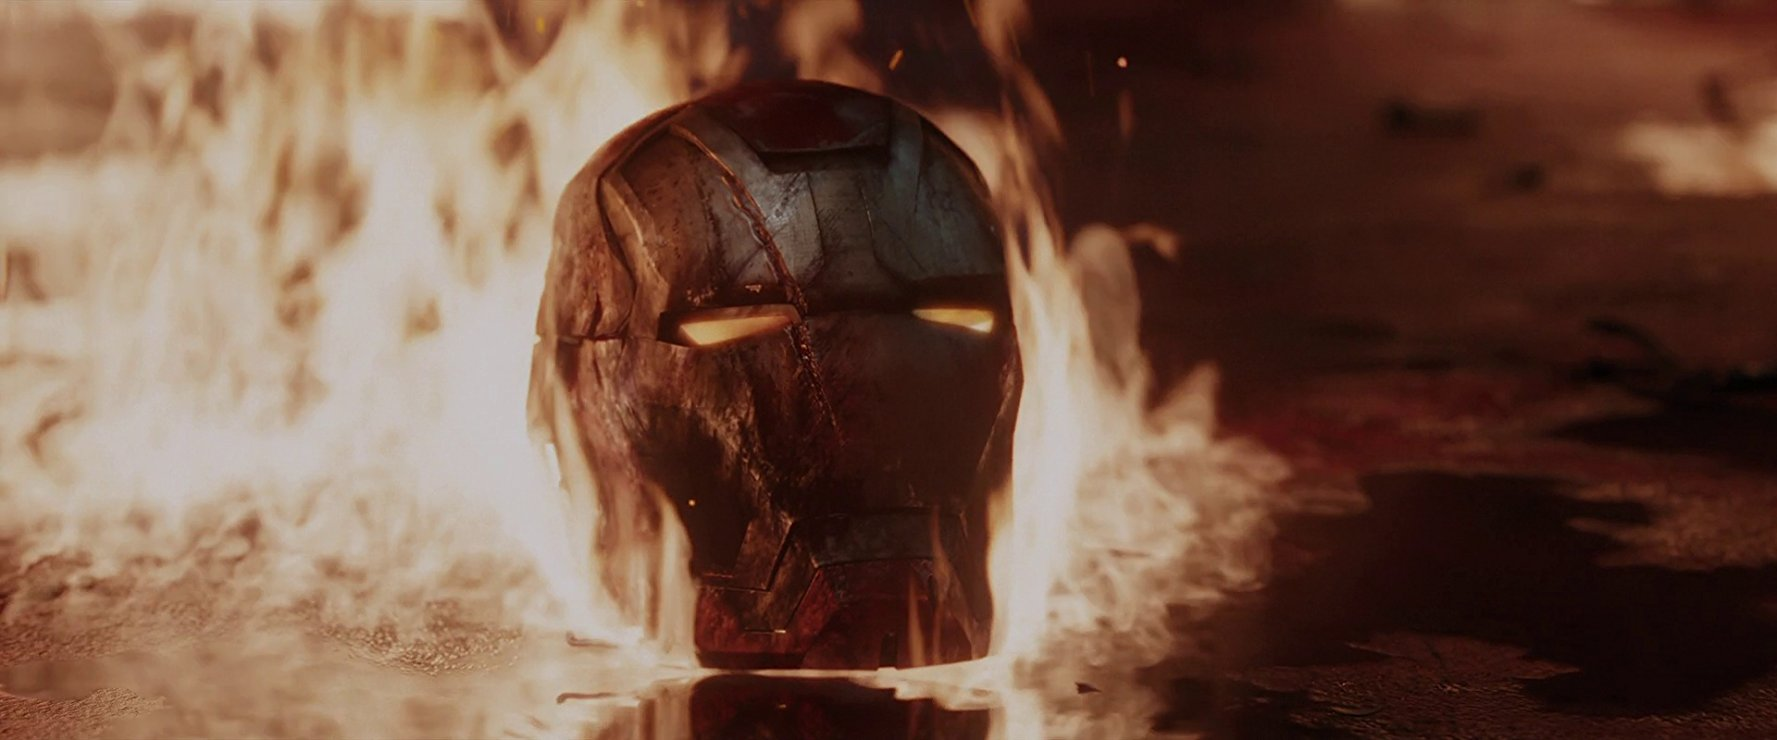 Iron Man's helmet burning in Iron Man 3